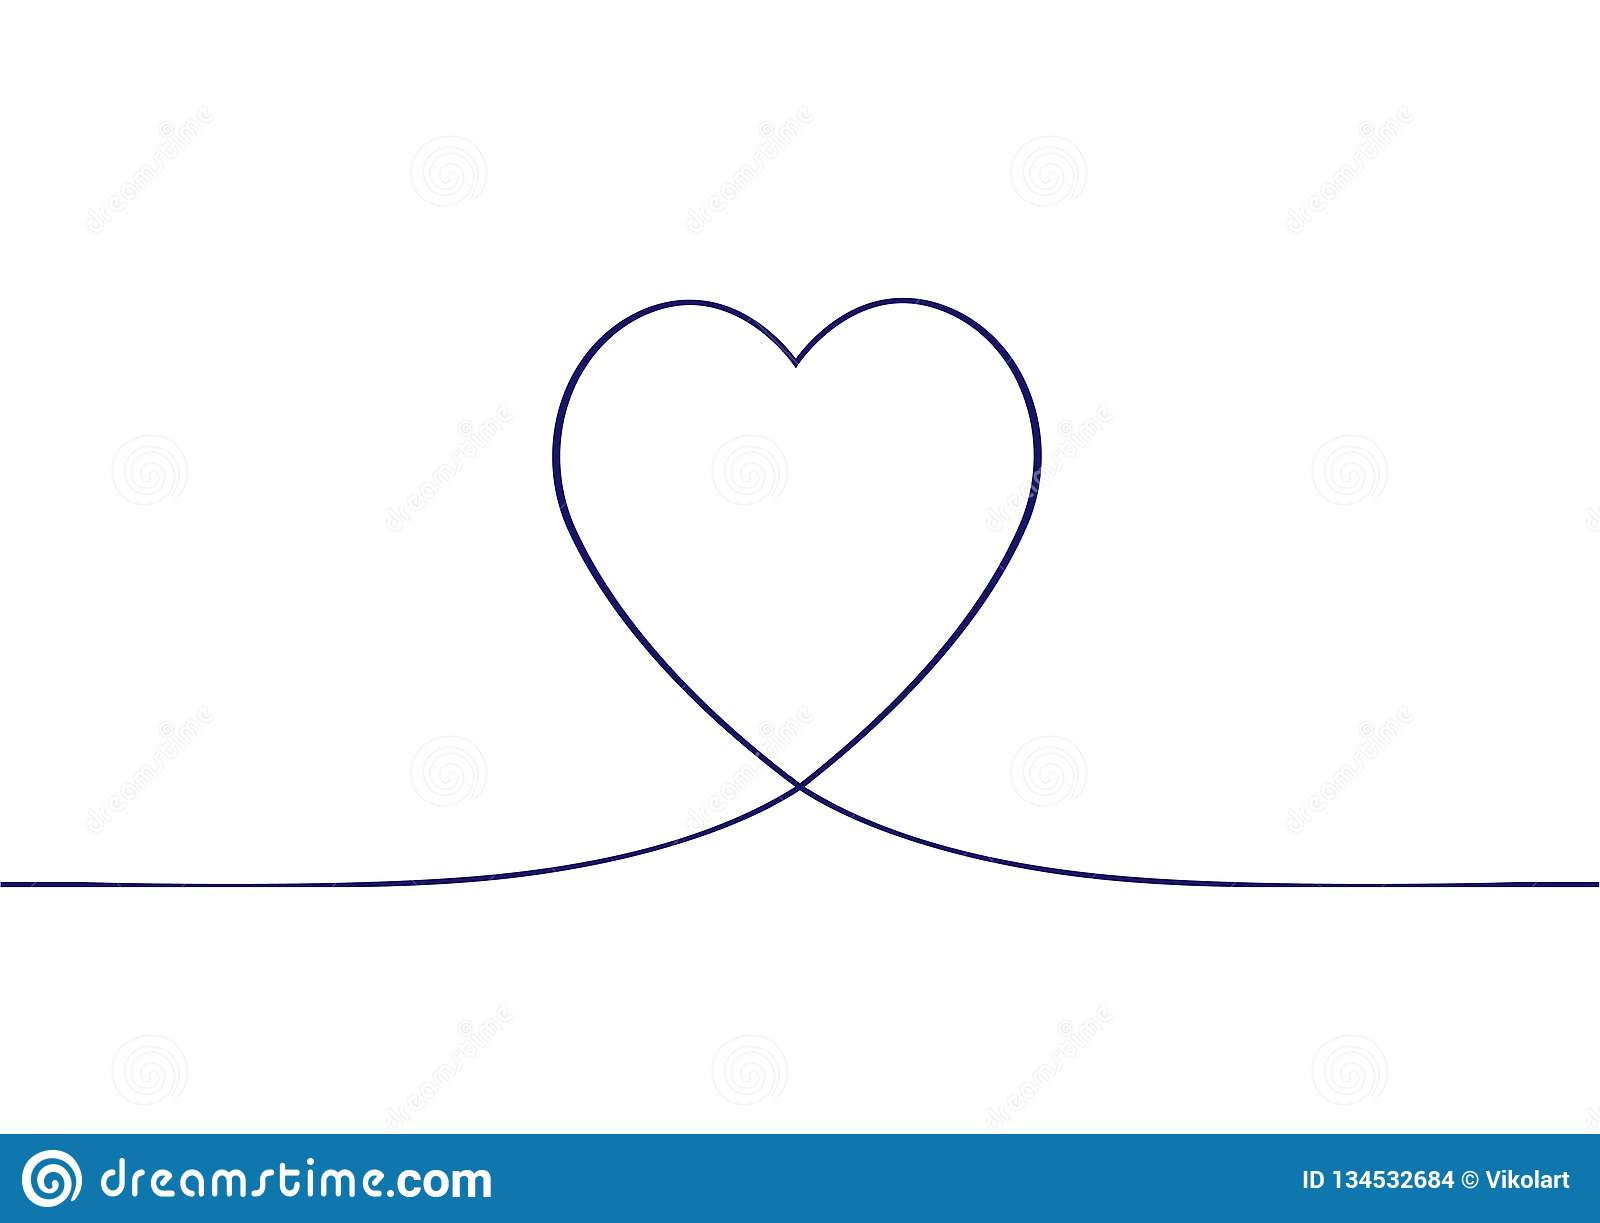 Heartbeat Line Drawing: Continuous One Line Drawing Of Heart. Heart Background